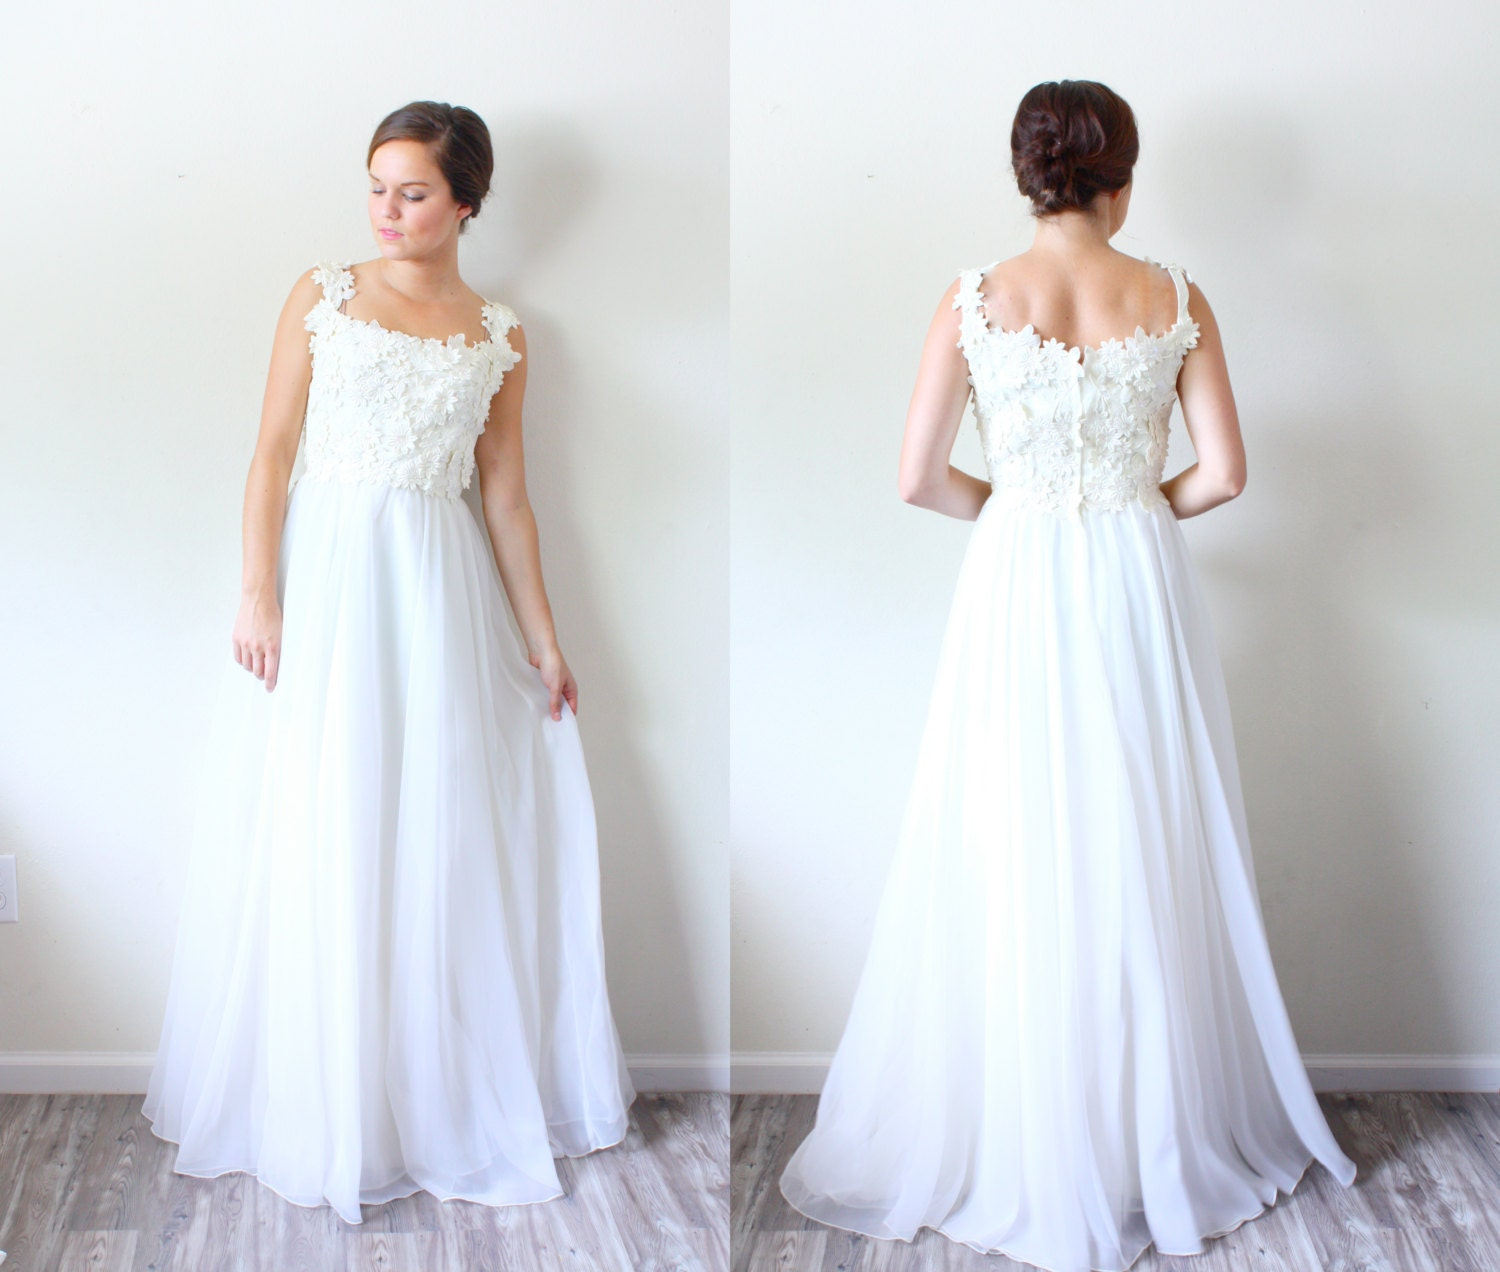 Pictures Of Shabby Chic Wedding Dresses : Vintage wedding dress shabby chic floral lace top